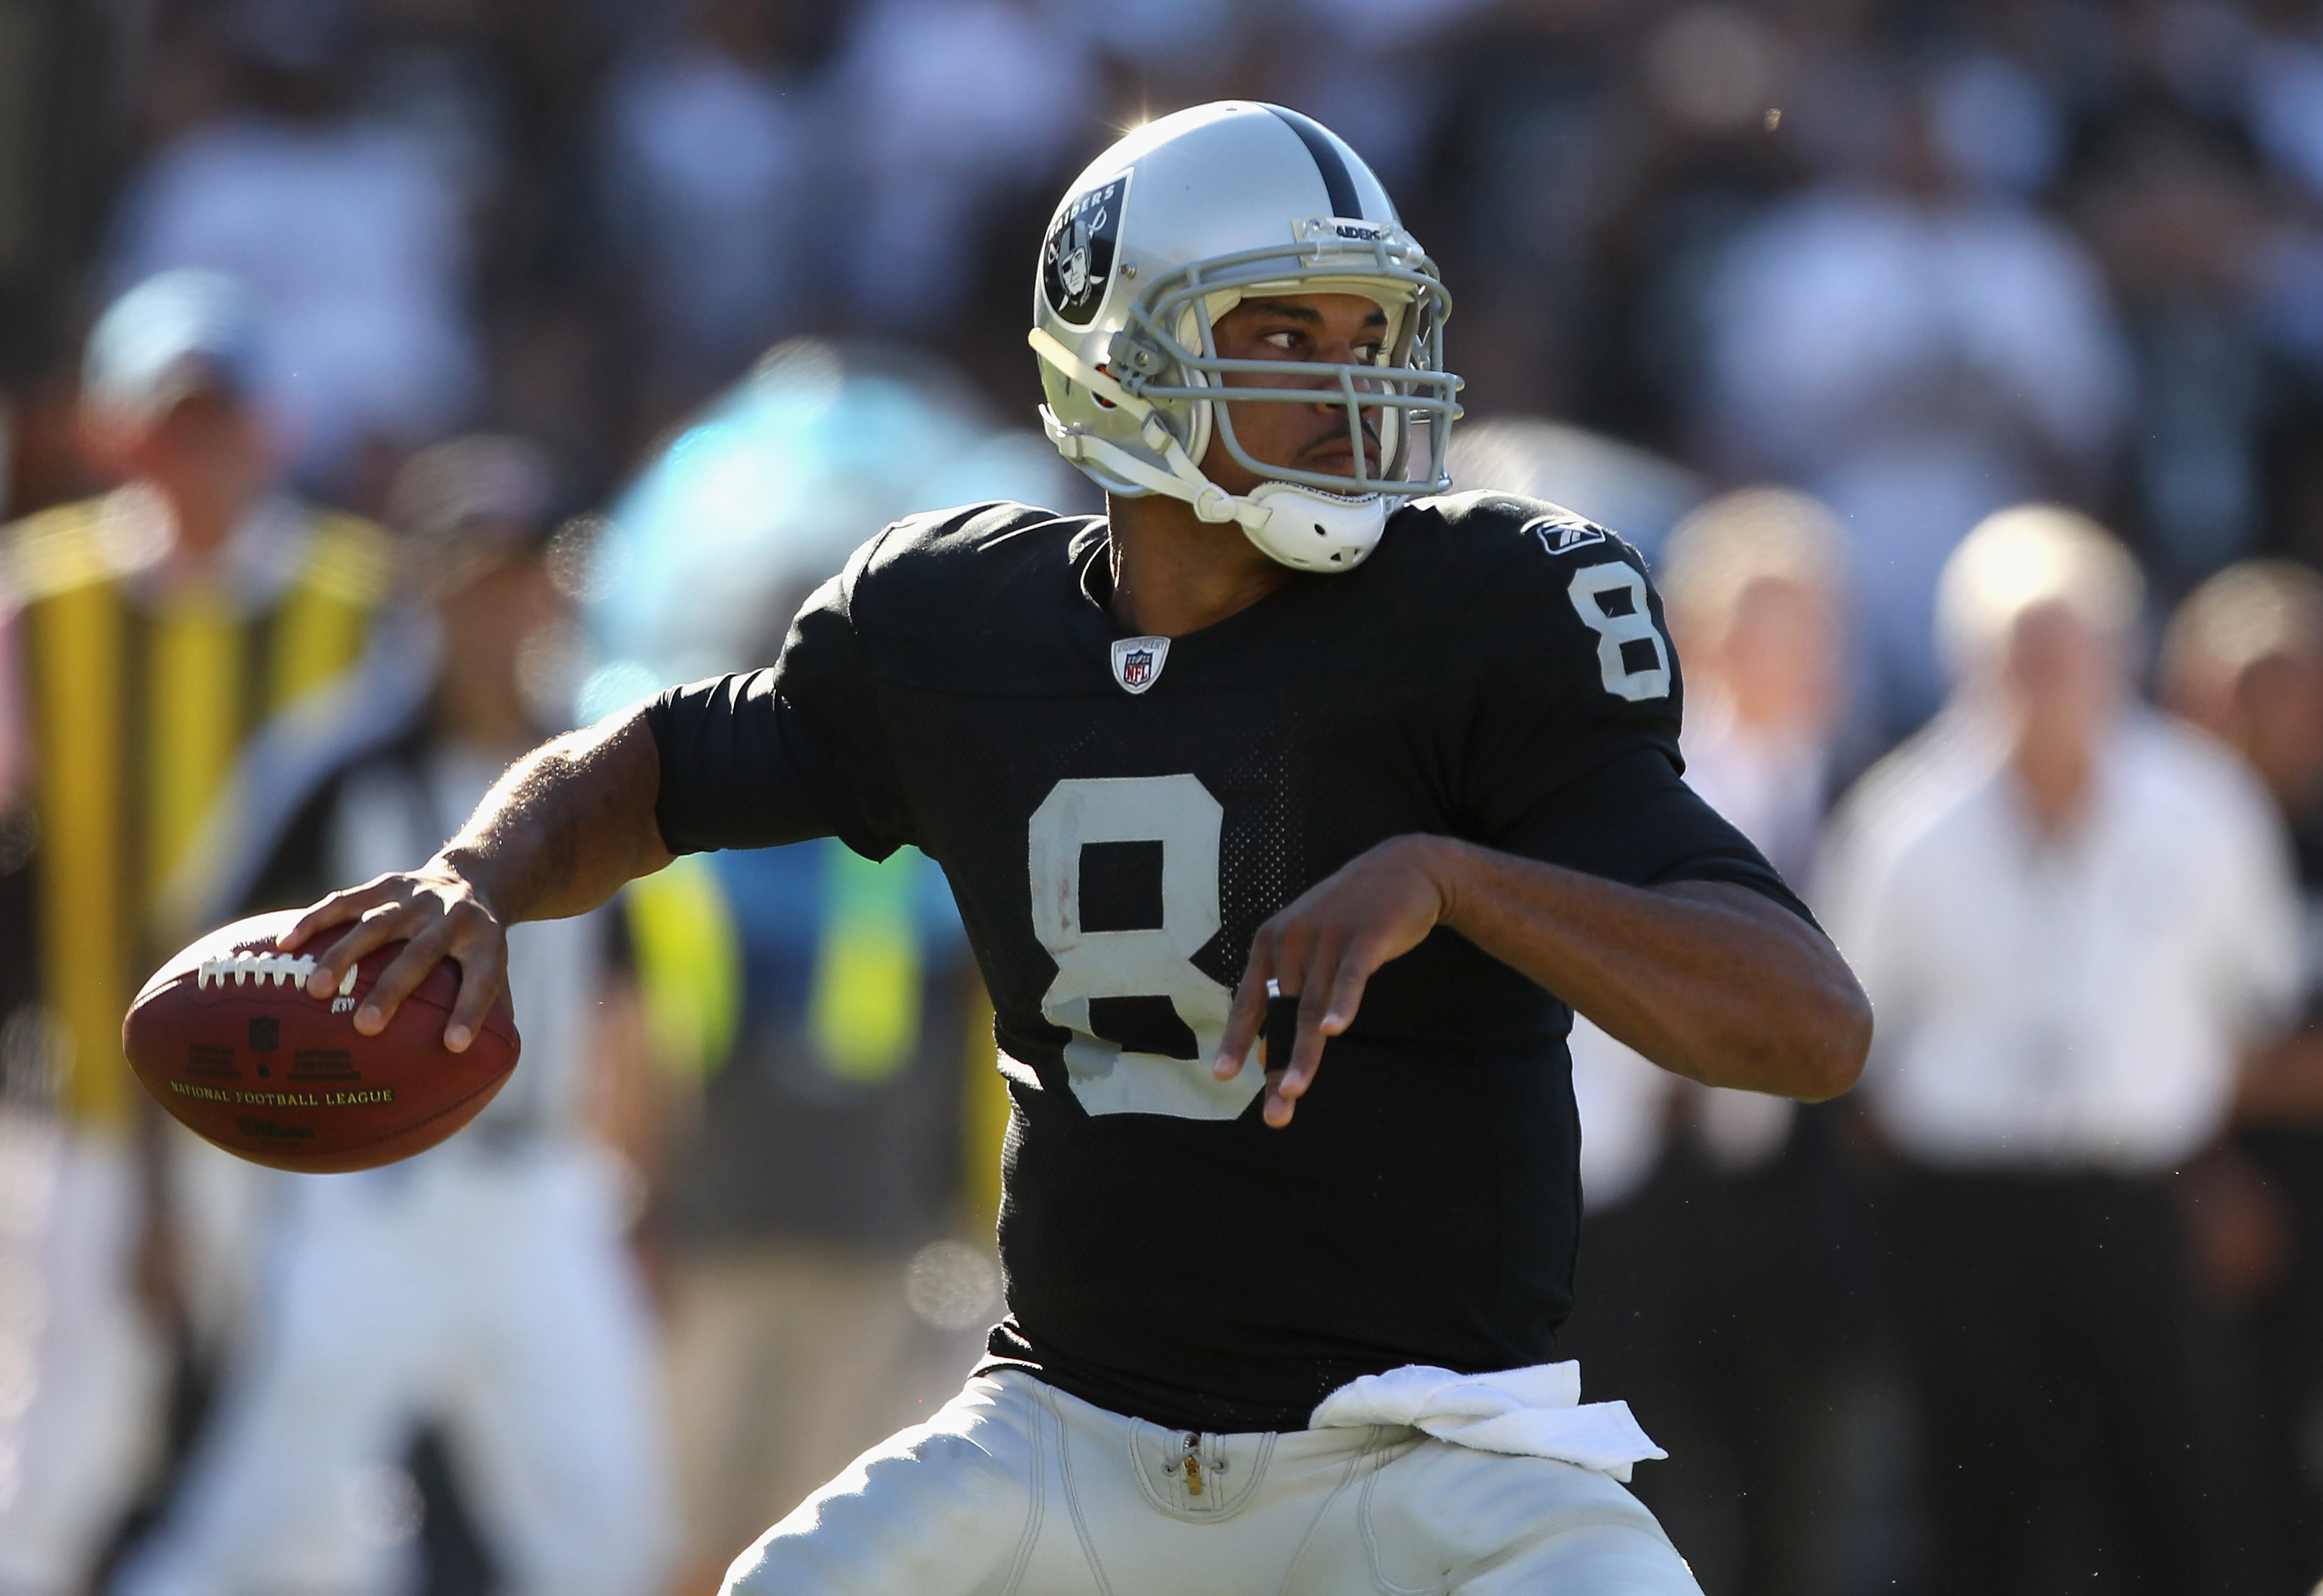 OAKLAND, CA - OCTOBER 10:  Jason Campbell #8 of the Oakland Raiders passes the ball against the San Diego Chargers at Oakland-Alameda County Coliseum on October 10, 2010 in Oakland, California.  (Photo by Ezra Shaw/Getty Images)